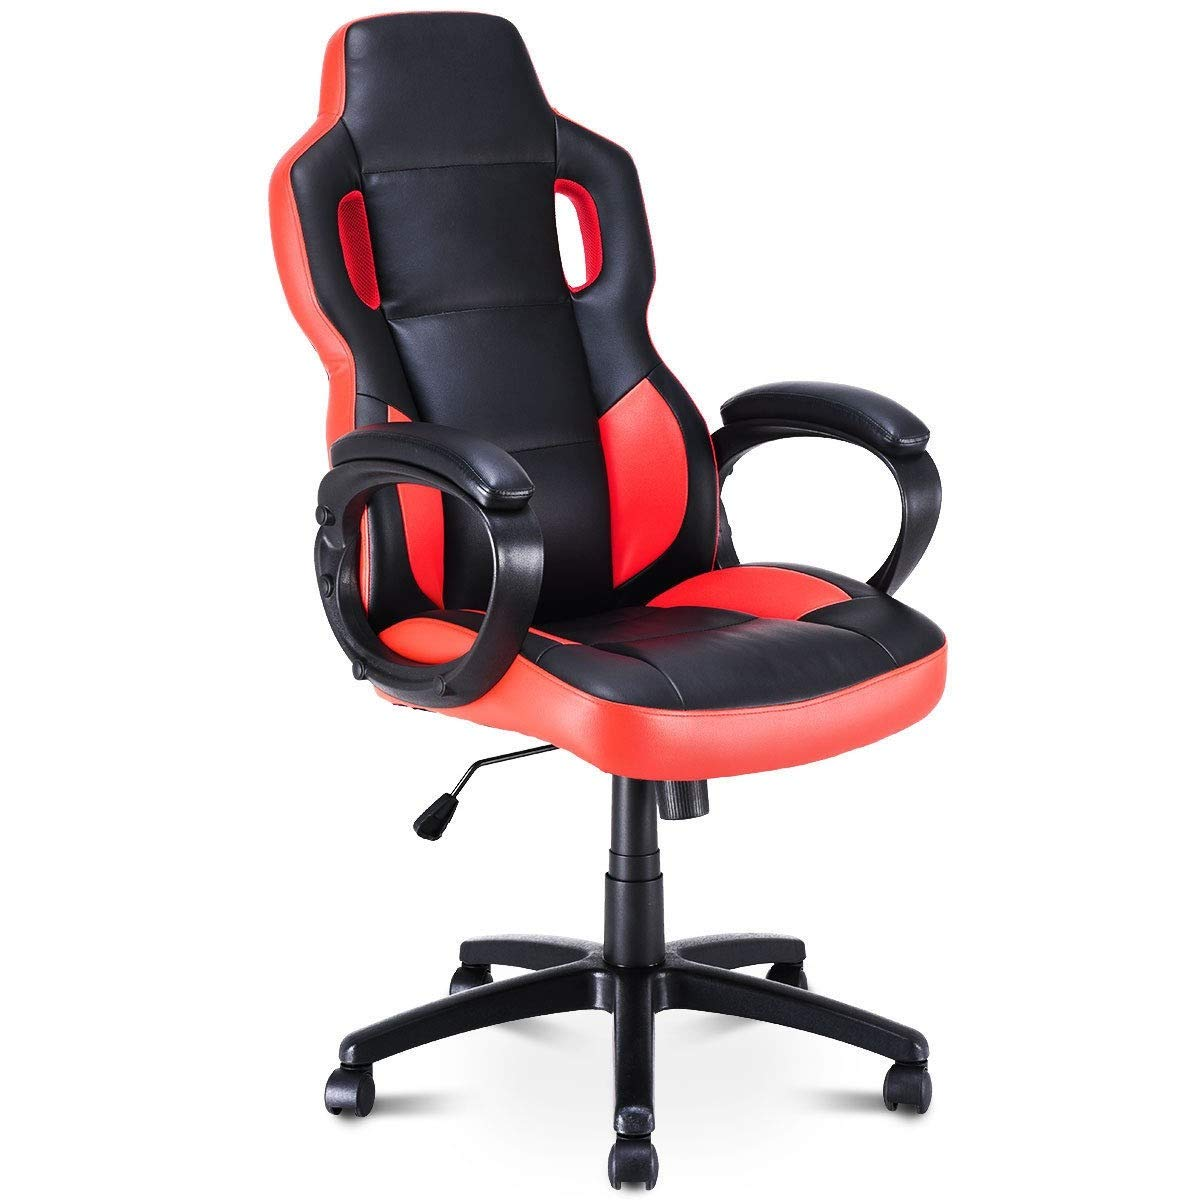 Modern Stylish Gaming Chair Executive Office Chair Racing Style Swivel Computer Chair Furniture Portable Rolling Wheels by USA_Best_Seller